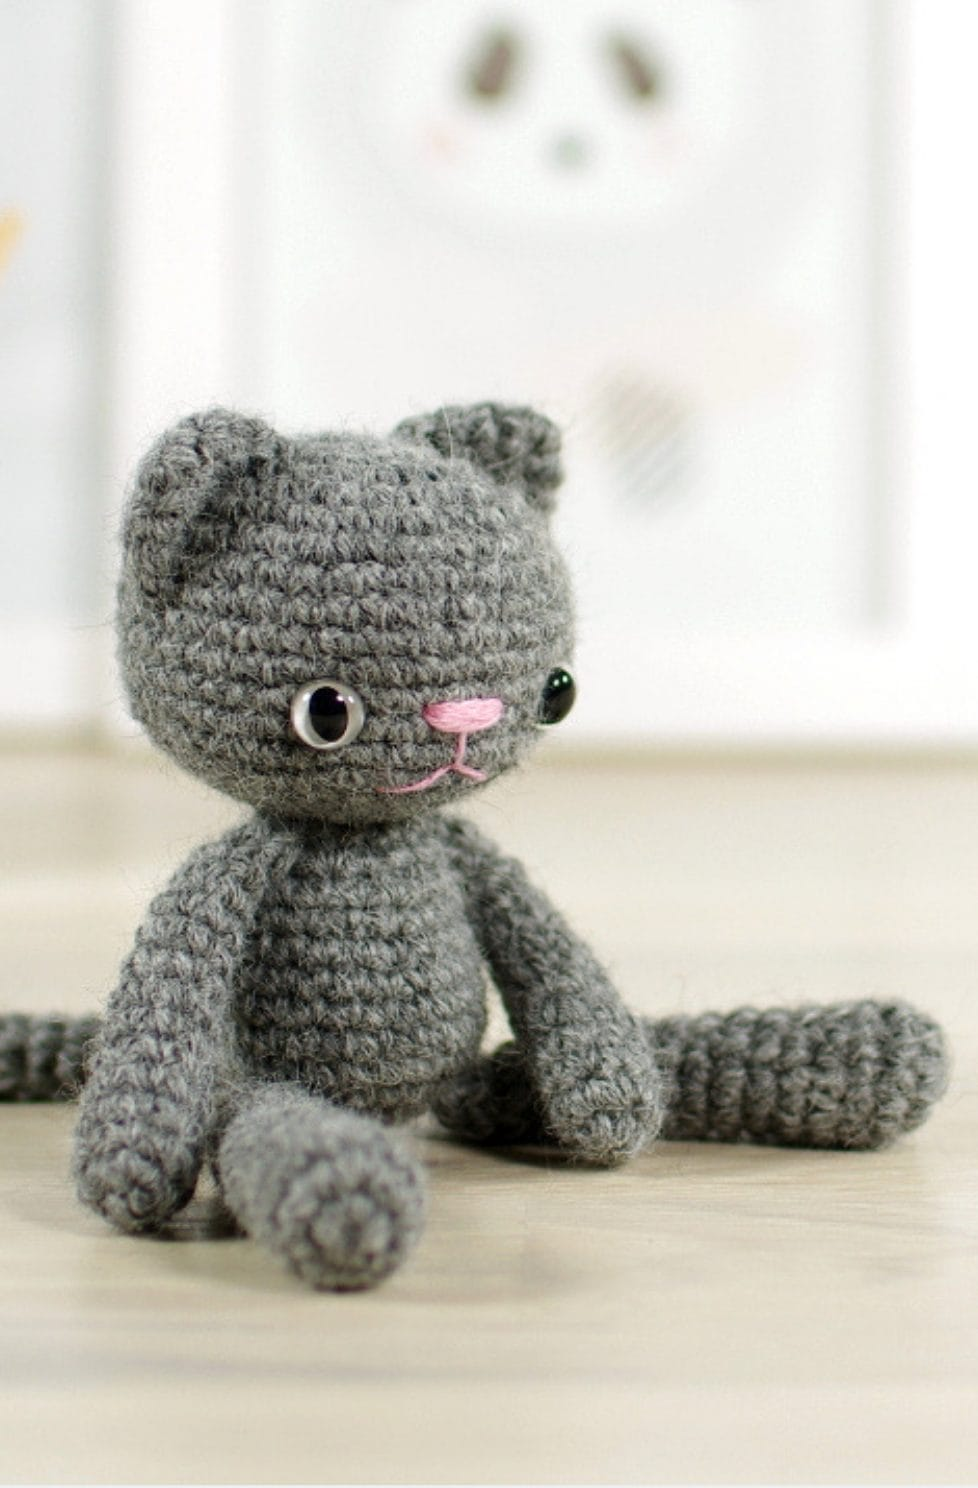 Amigurumi Today - Page 4 of 11 - Free amigurumi patterns and ... | 1488x978